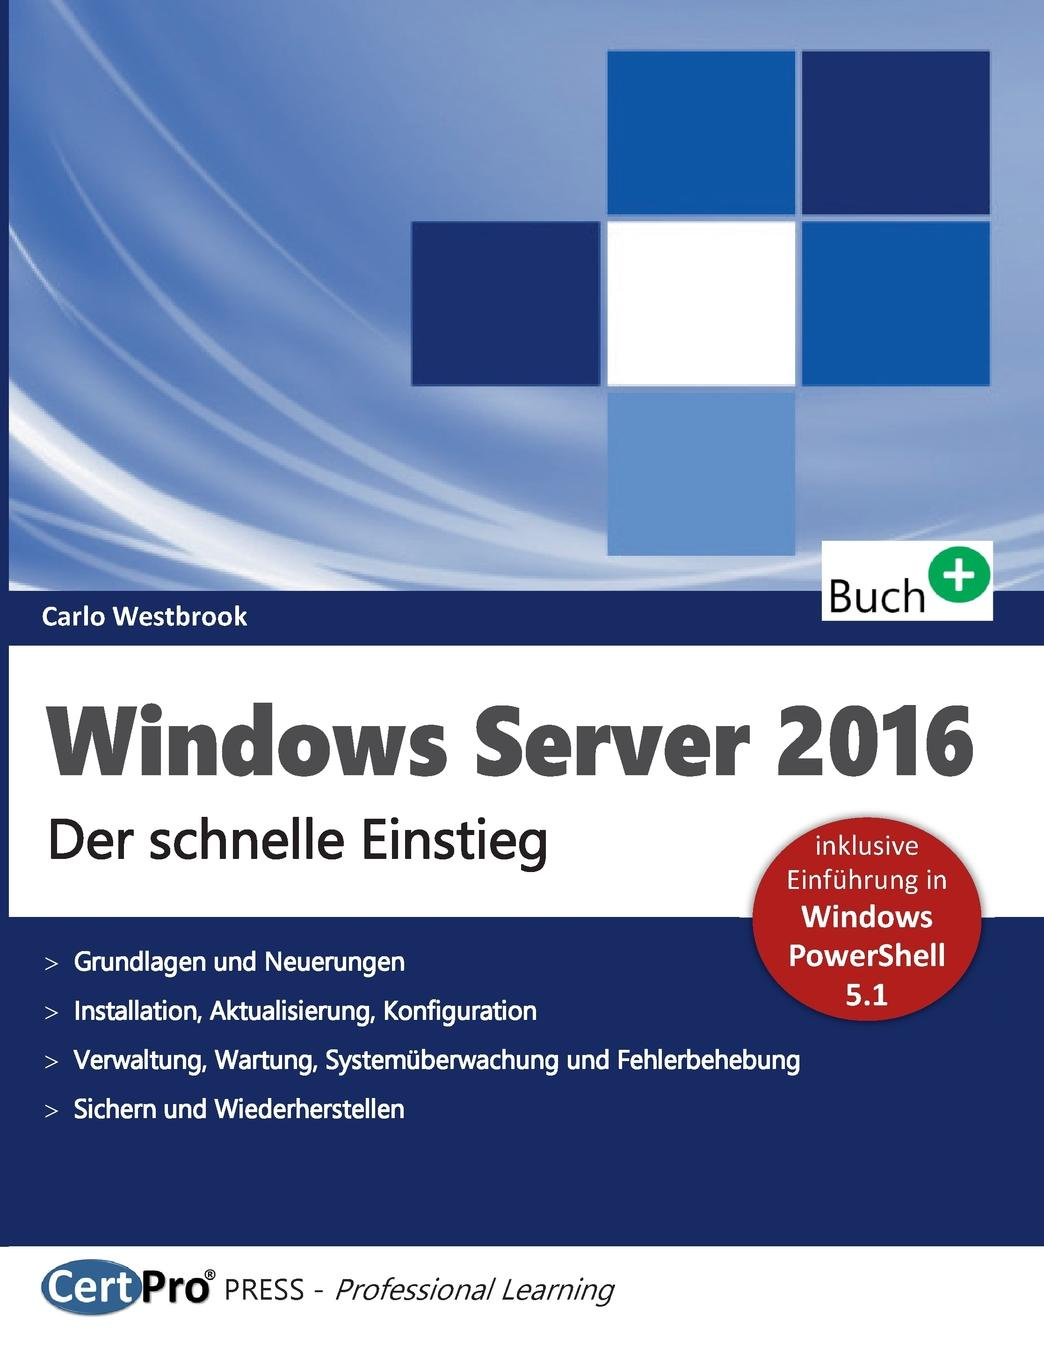 Carlo Westbrook Windows Server 2016 server 400